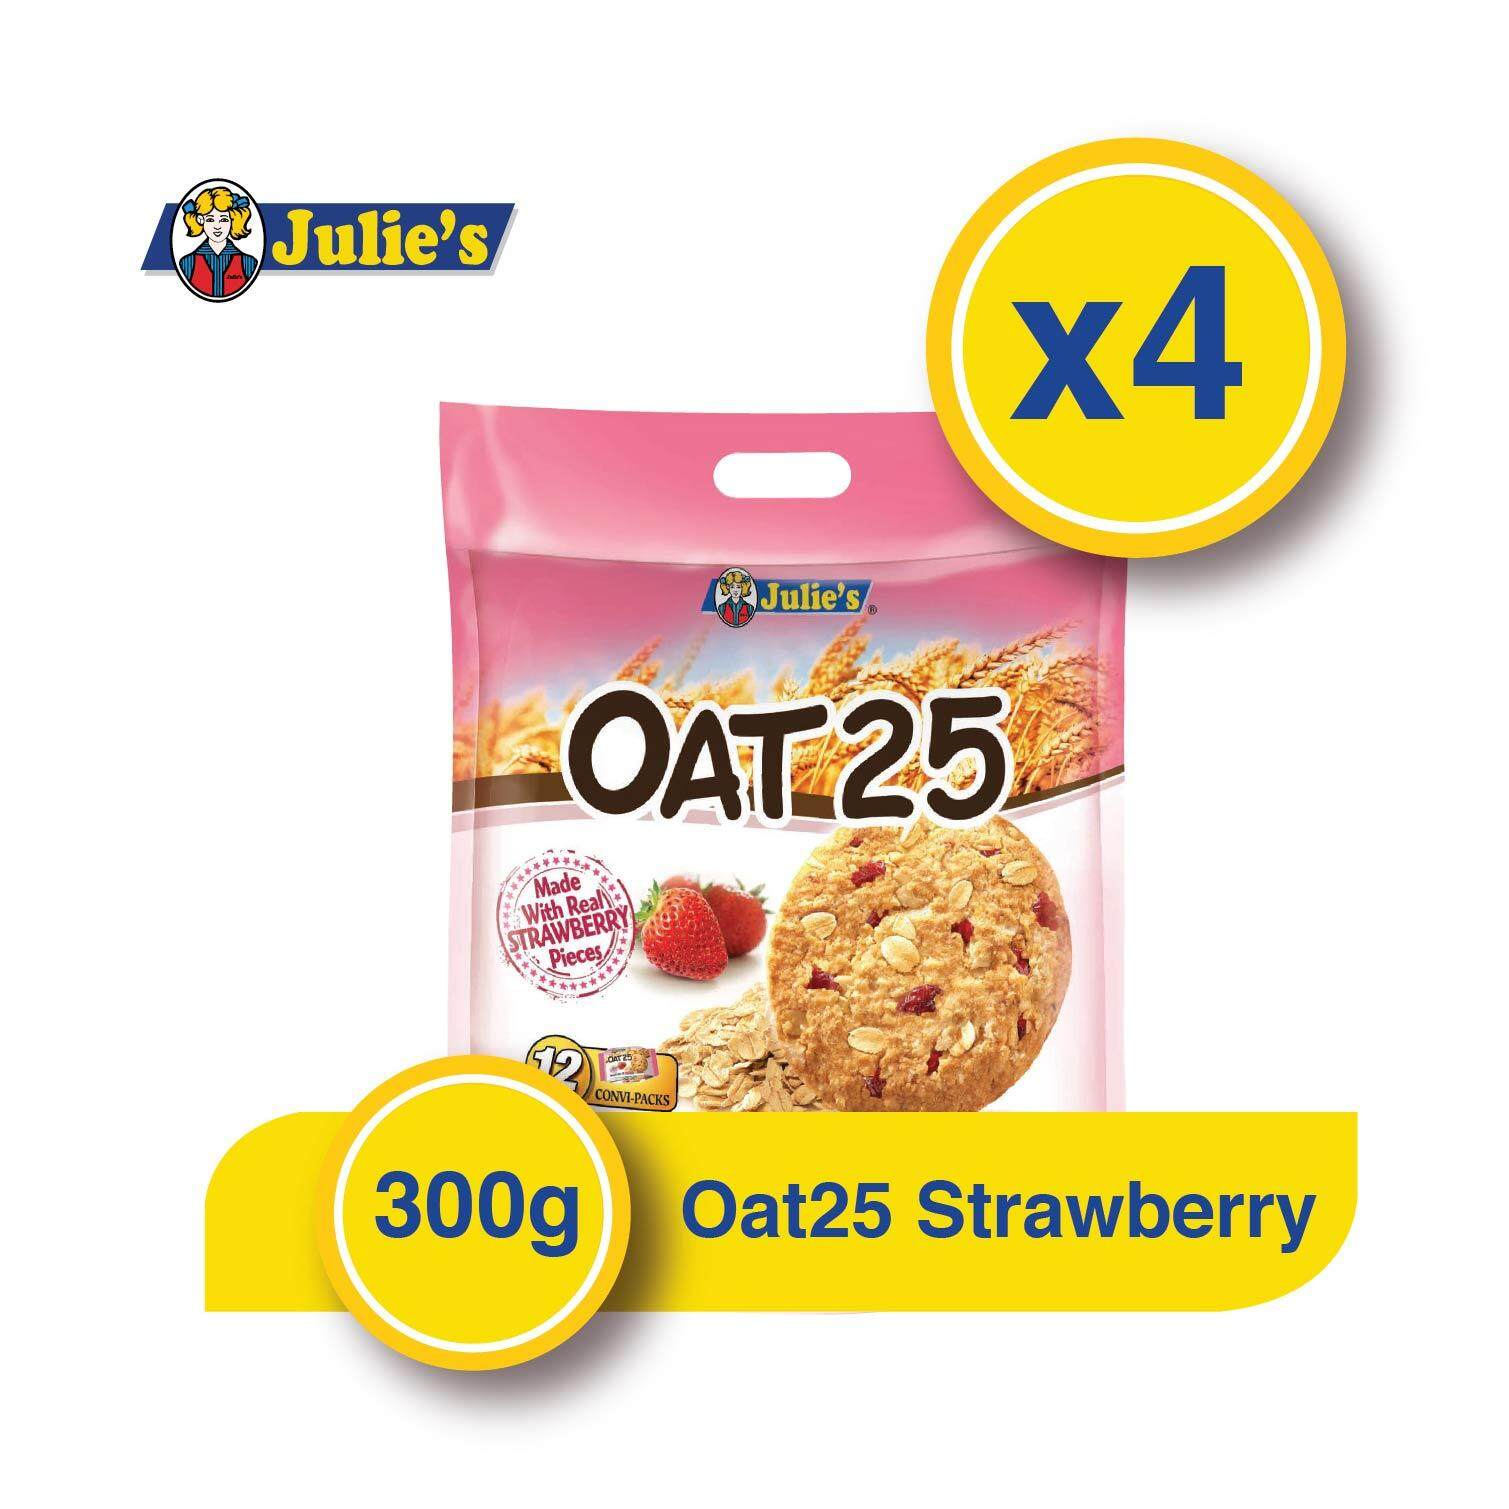 Julie\'s Oat25 Strawberry Biscuit 300g x 4 packs + FREE 5 Biscuit Pack